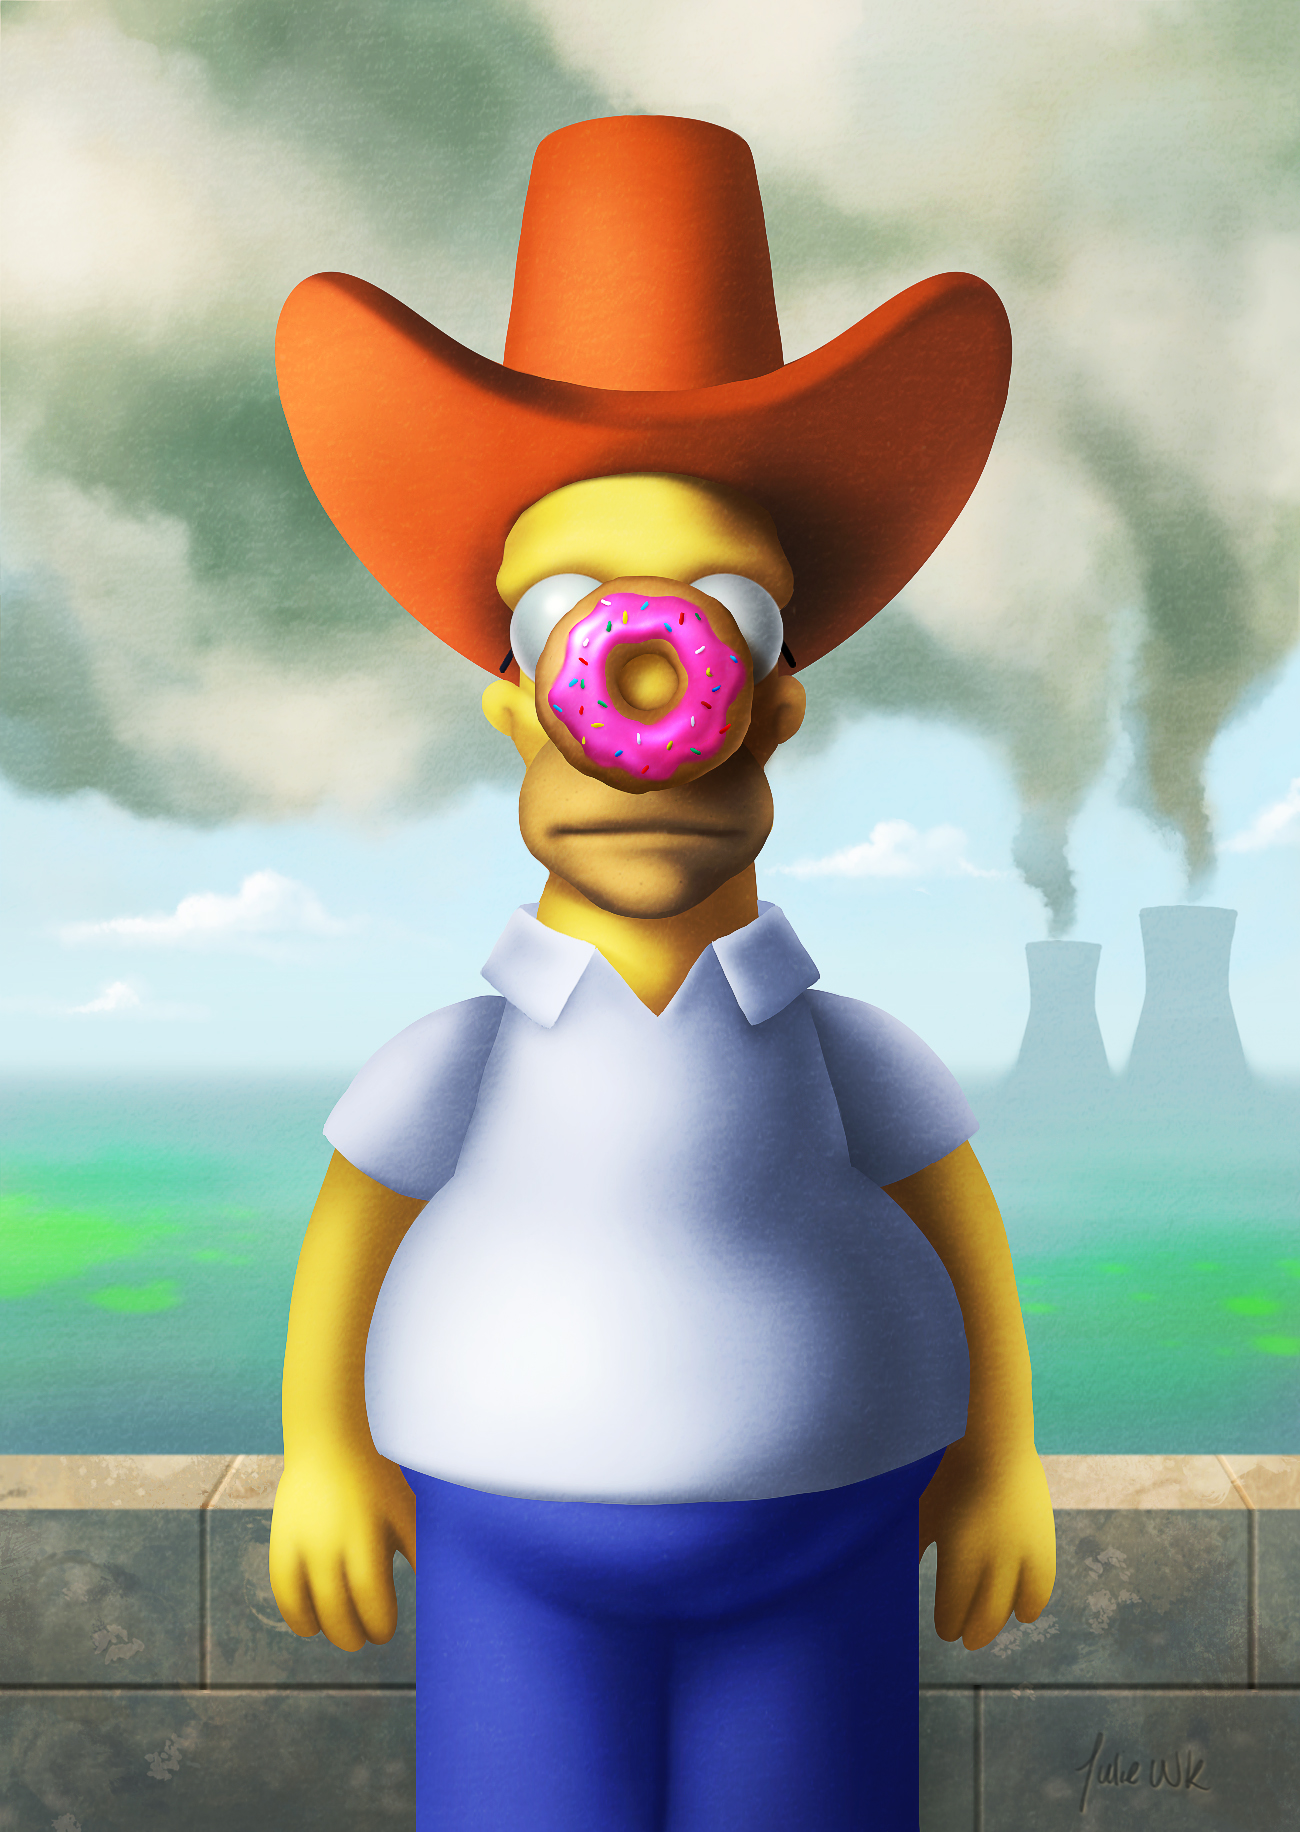 The son of Simpson